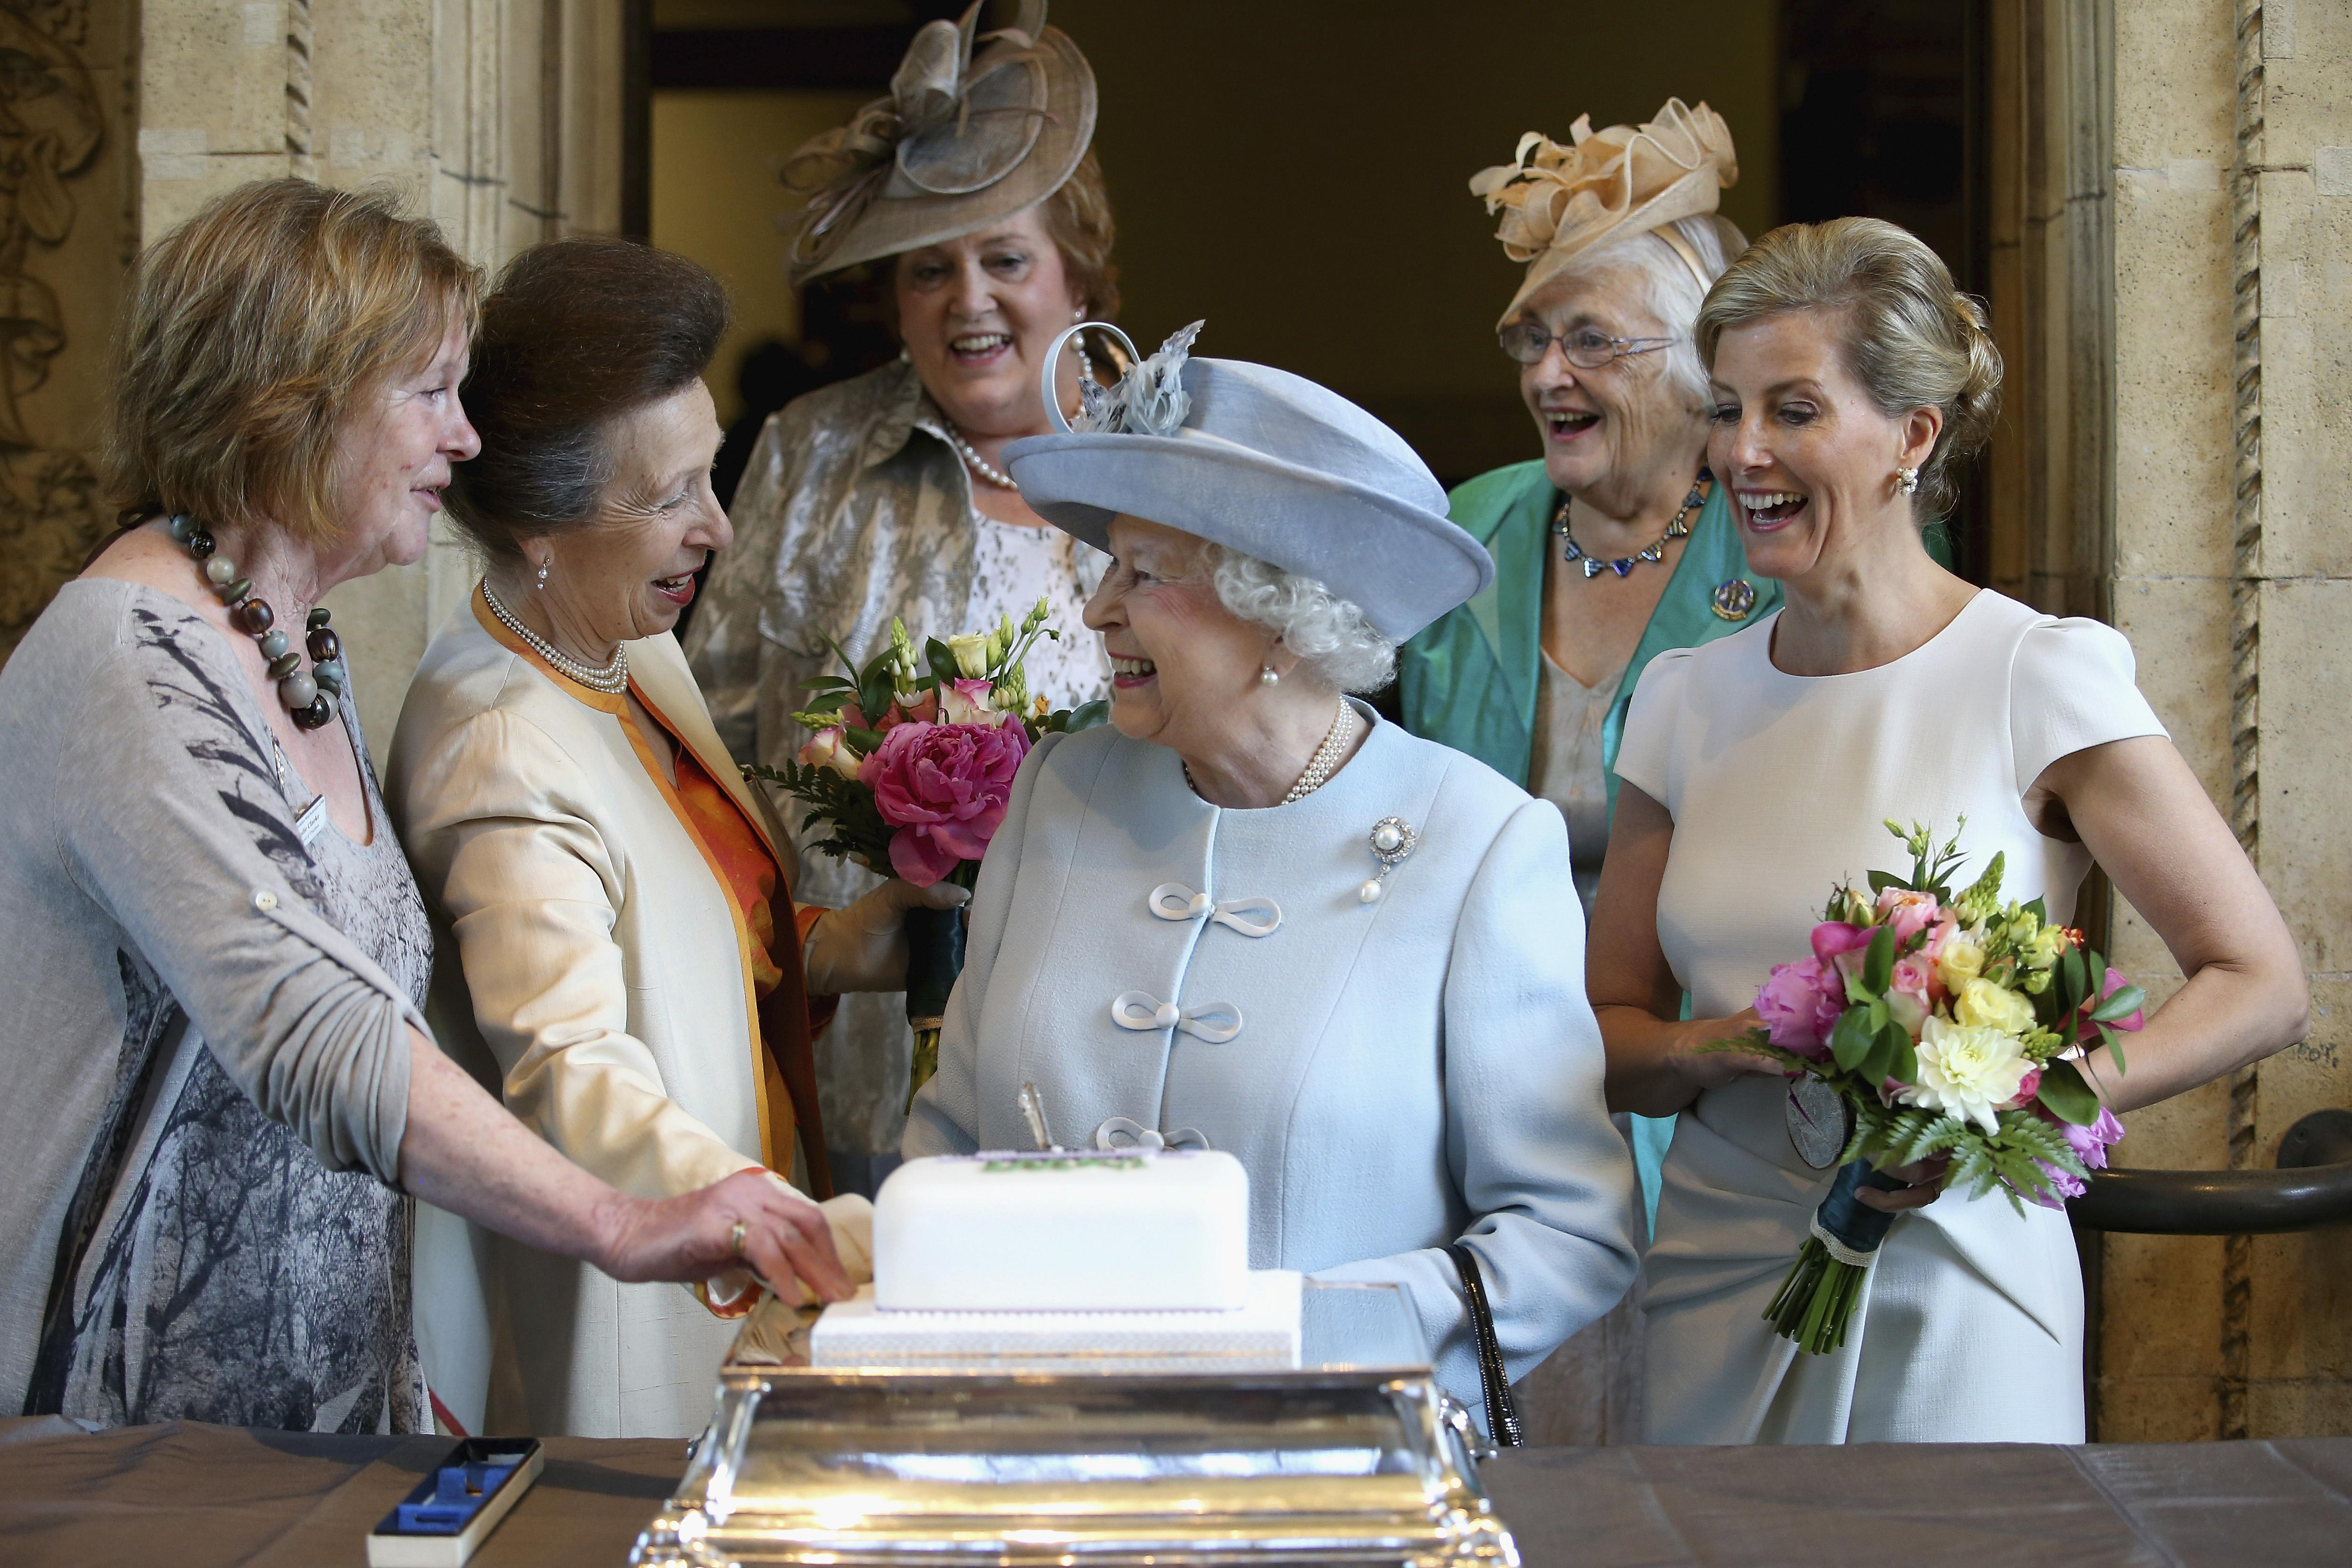 Queen Elizabeth flanked by Sophie, Countess of Wessex (R) and Princess Anne (2nd L)